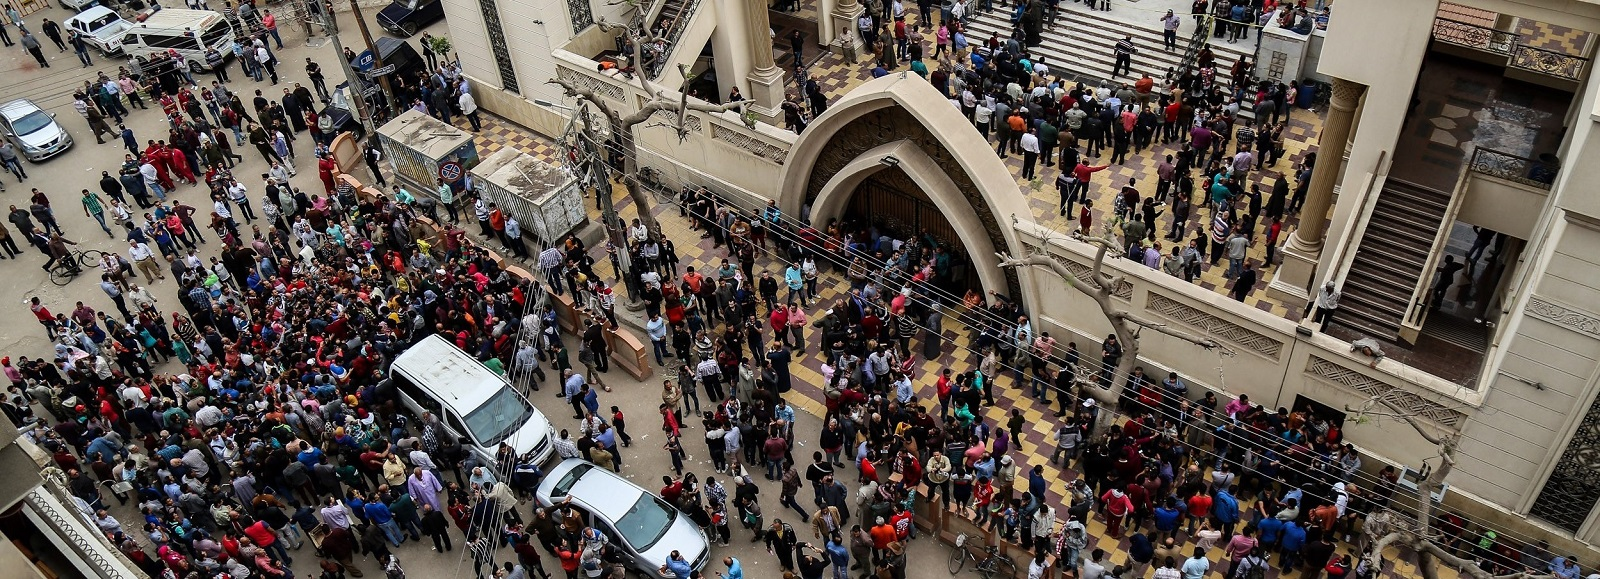 People gather in front of the Saint George church in Tanta after a bomb struck inside on 9 April (Photo: Ibrahim Ramadan/Getty Images)